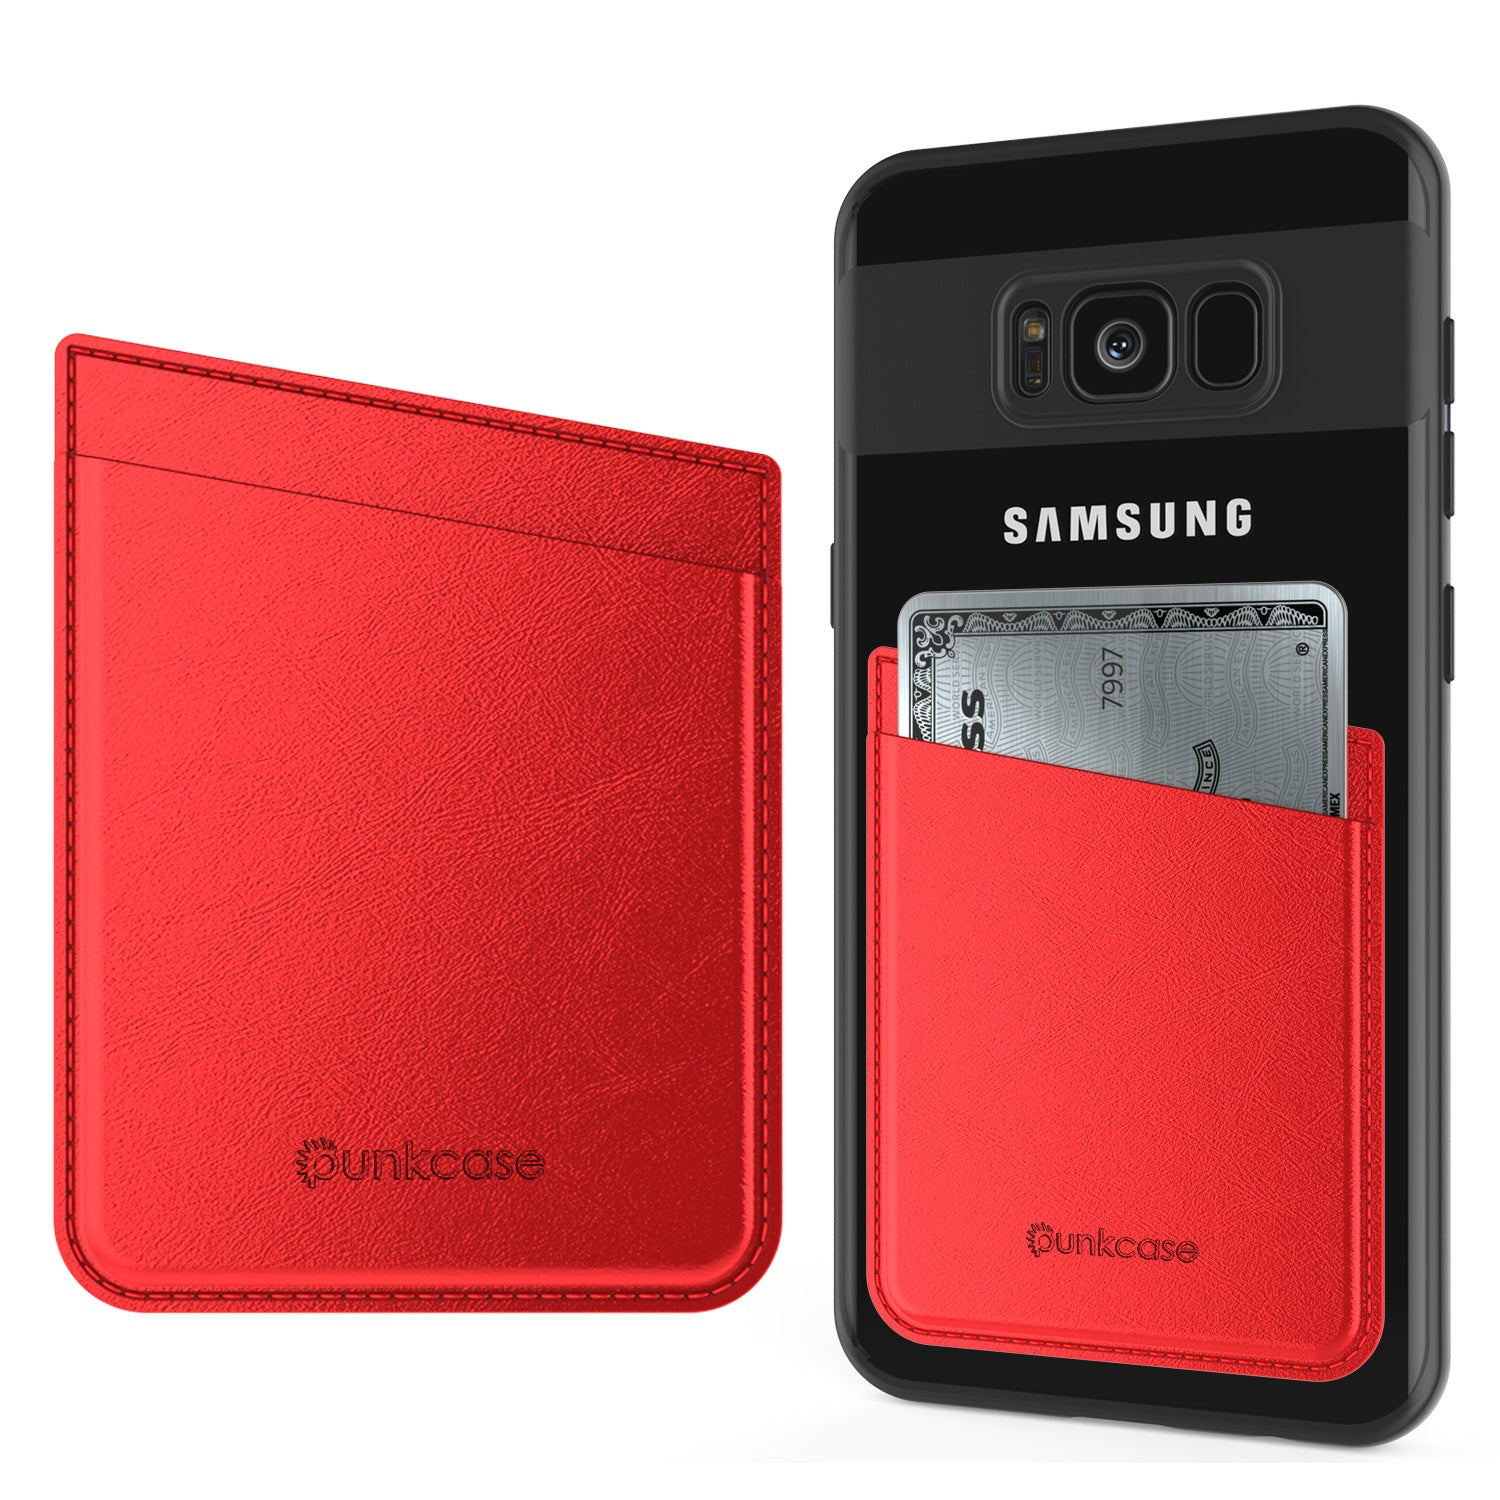 PunkCase CardStud Deluxe Stick On Wallet | Adhesive Card Holder Attachment for Back of iPhone, Android & More | Leather Pouch | [Red]